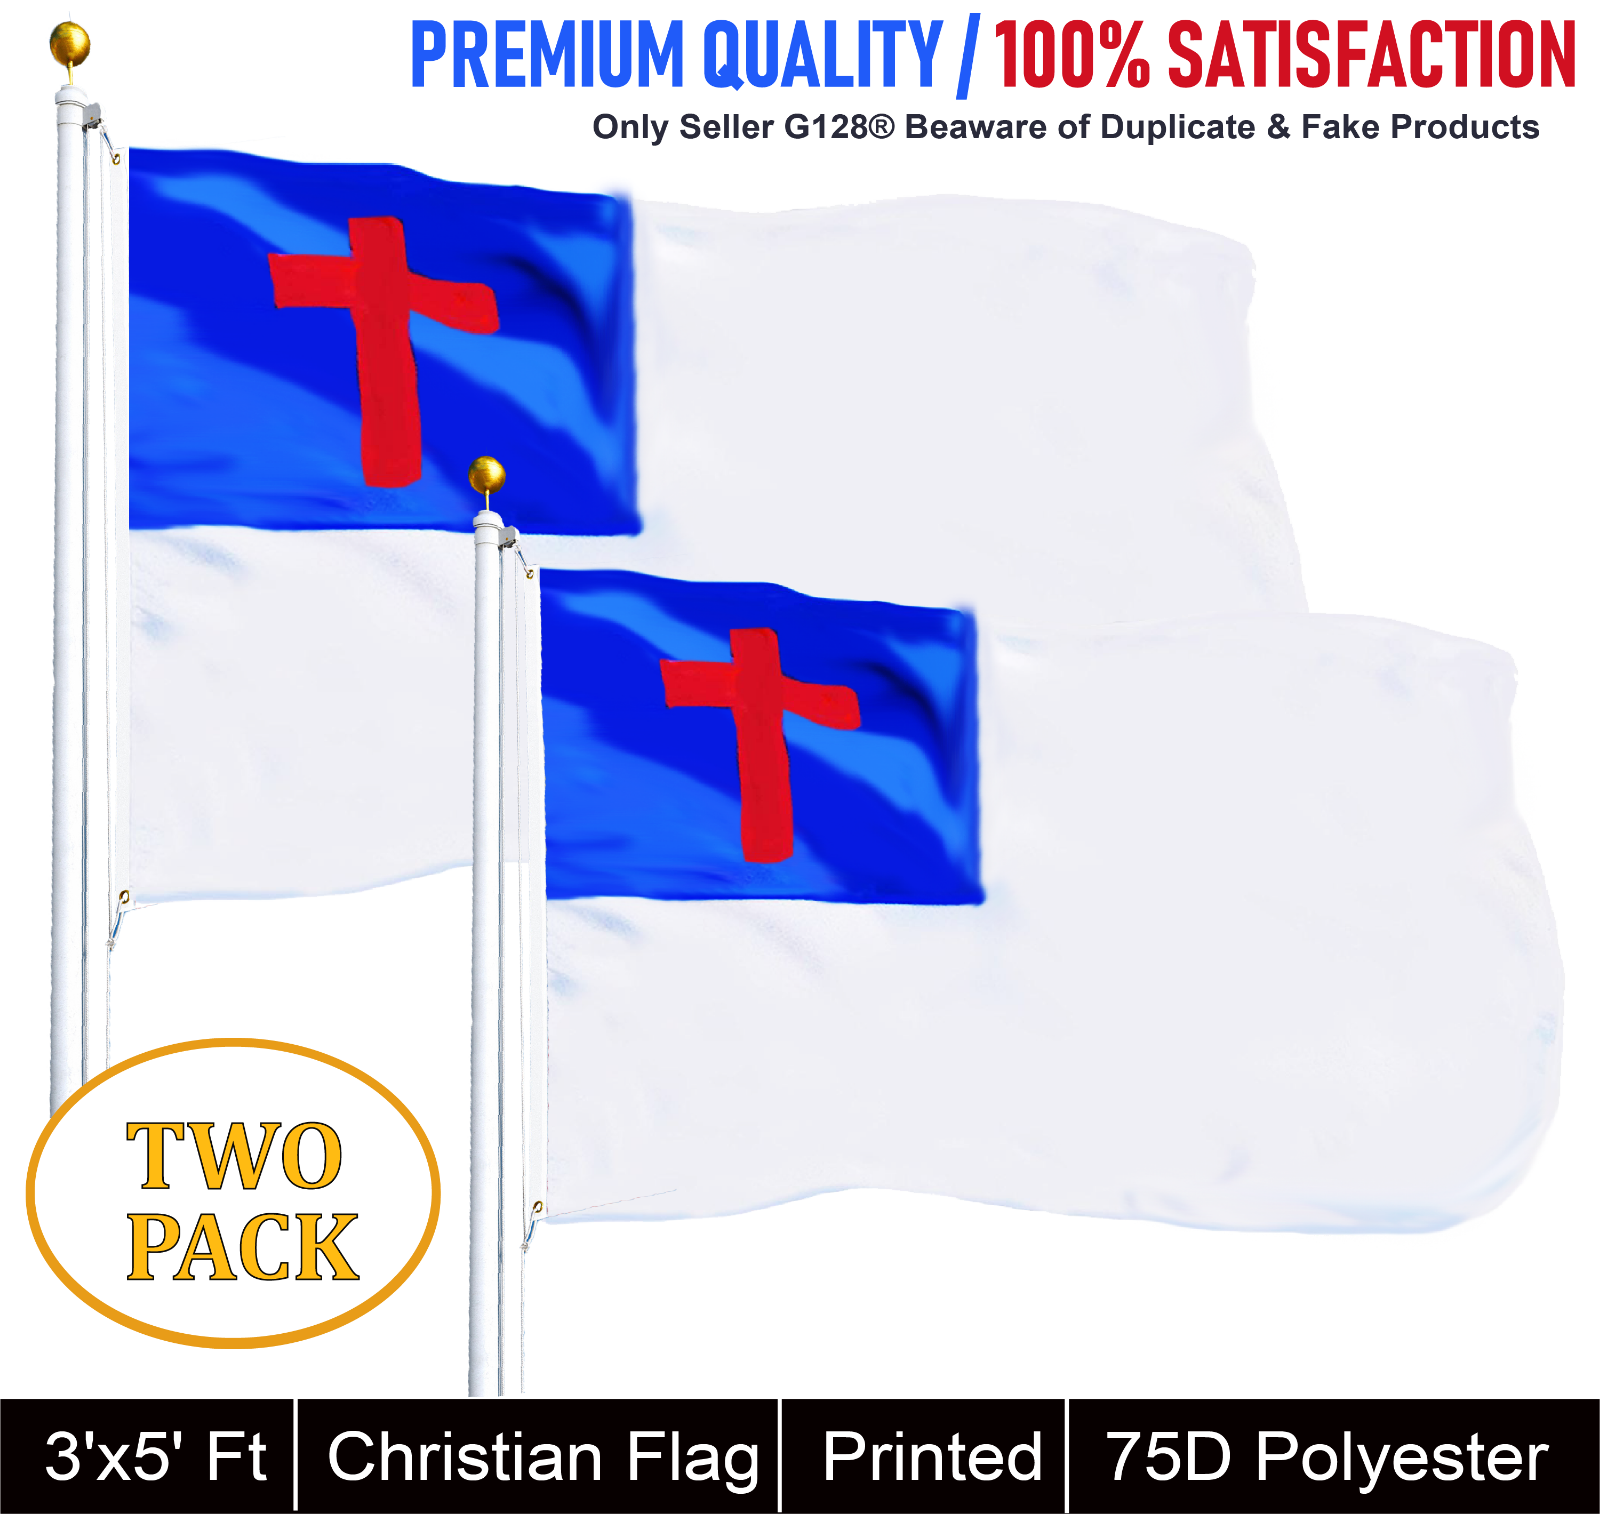 G128® TWO PACK of Christian Religious Flag Polyester 3x5 ft